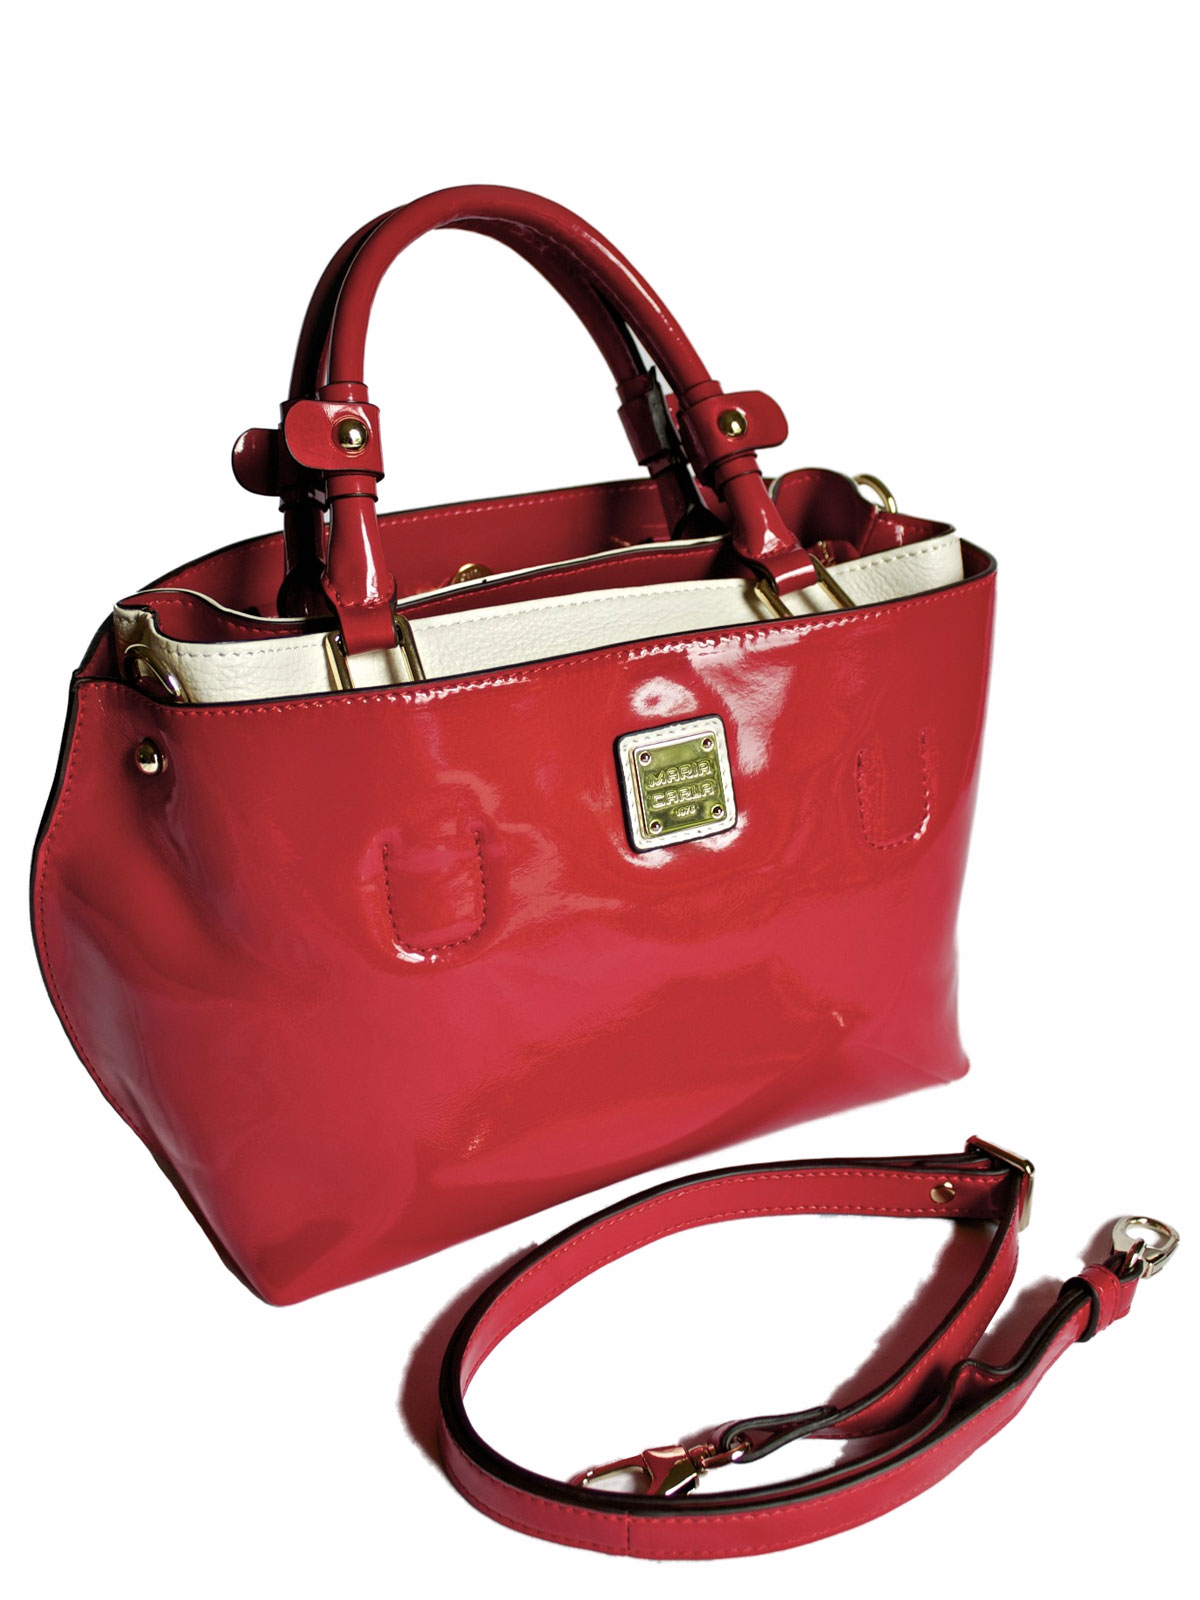 Maria Carla Red Patent Leather Grab Bag